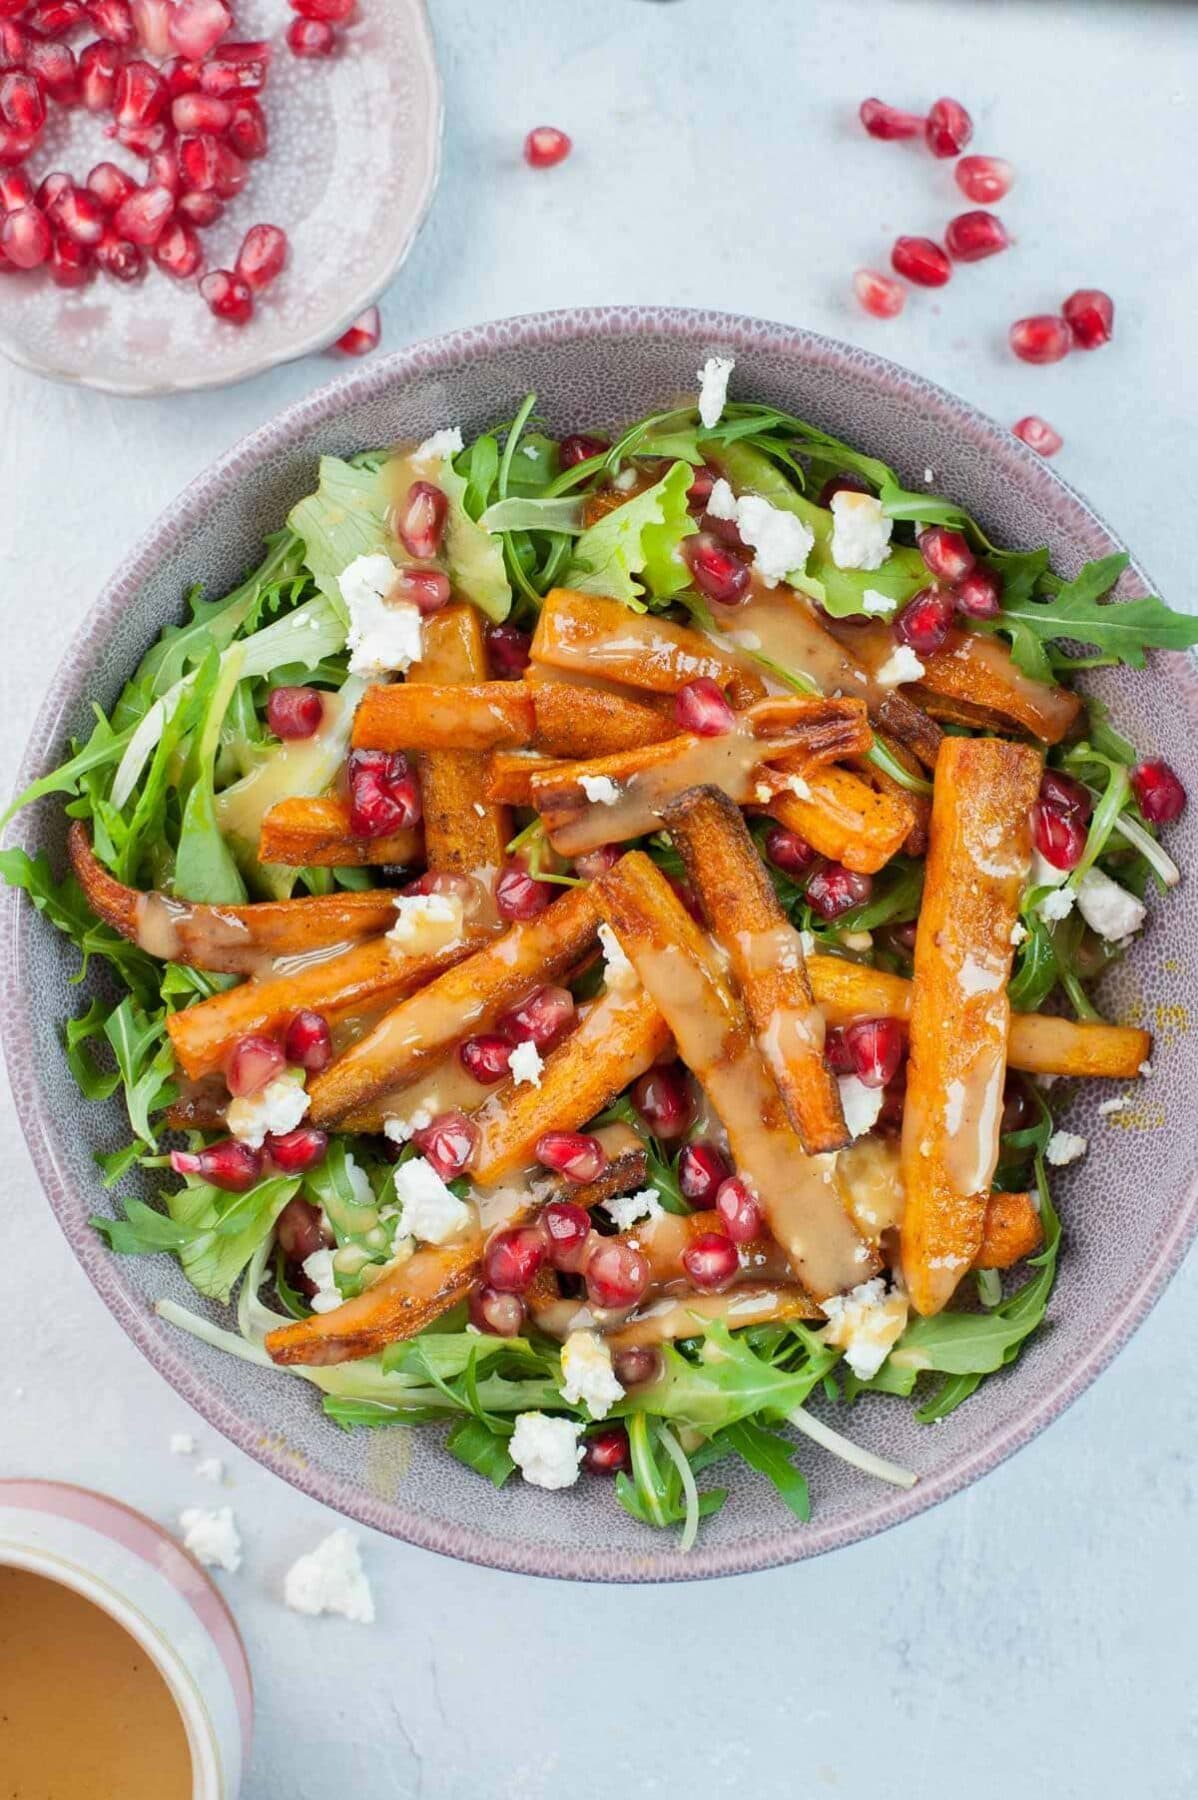 Roasted carrot salad with pomegranate and peanut butter lemon dressing in a violet bowl.